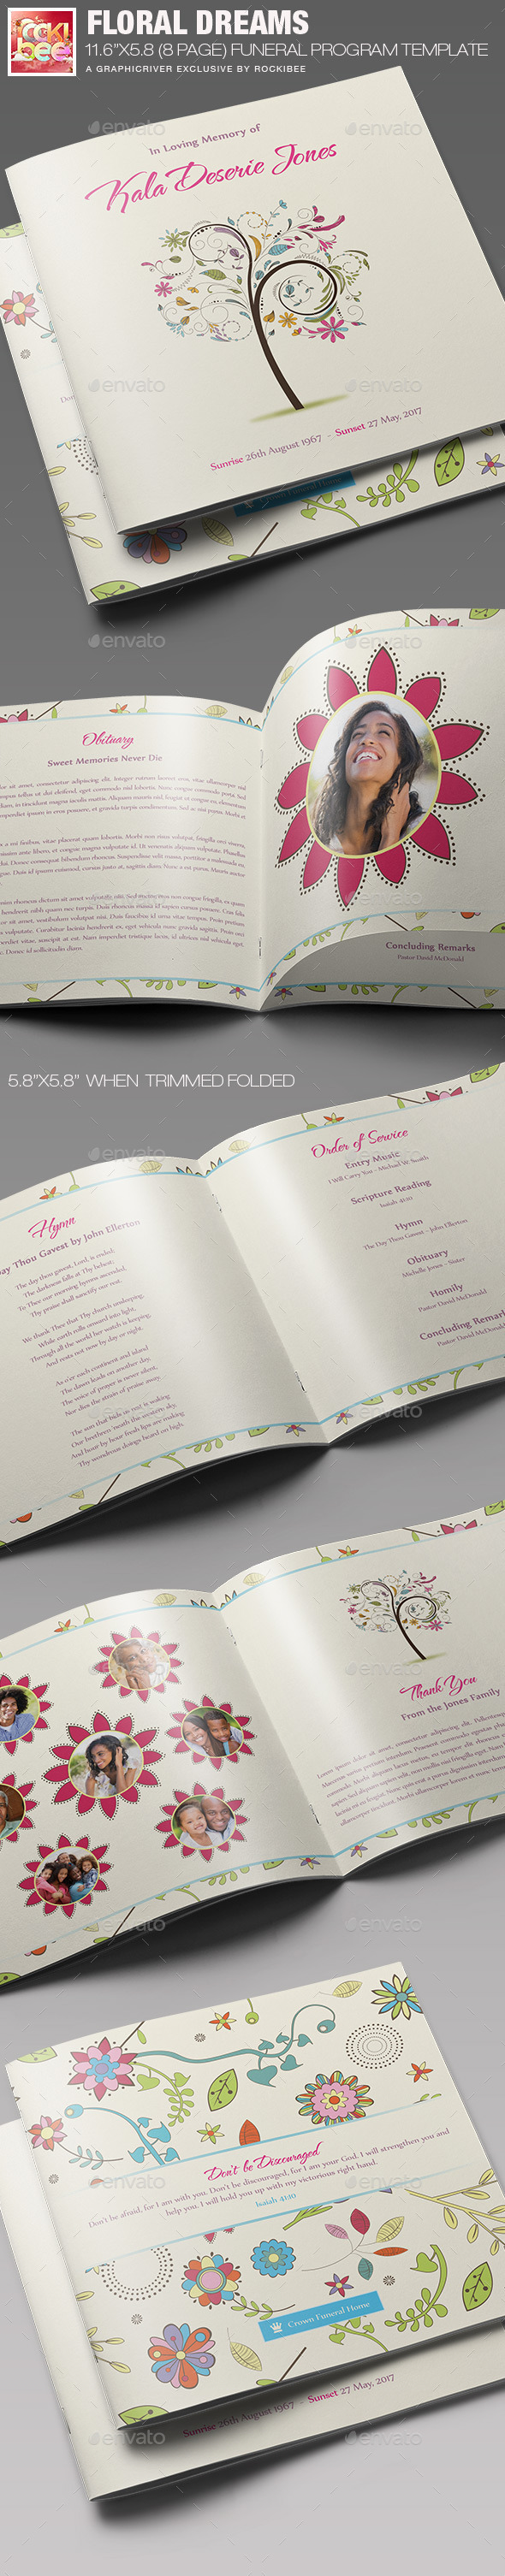 GraphicRiver Floral Dreams Funeral Program Template 11282162